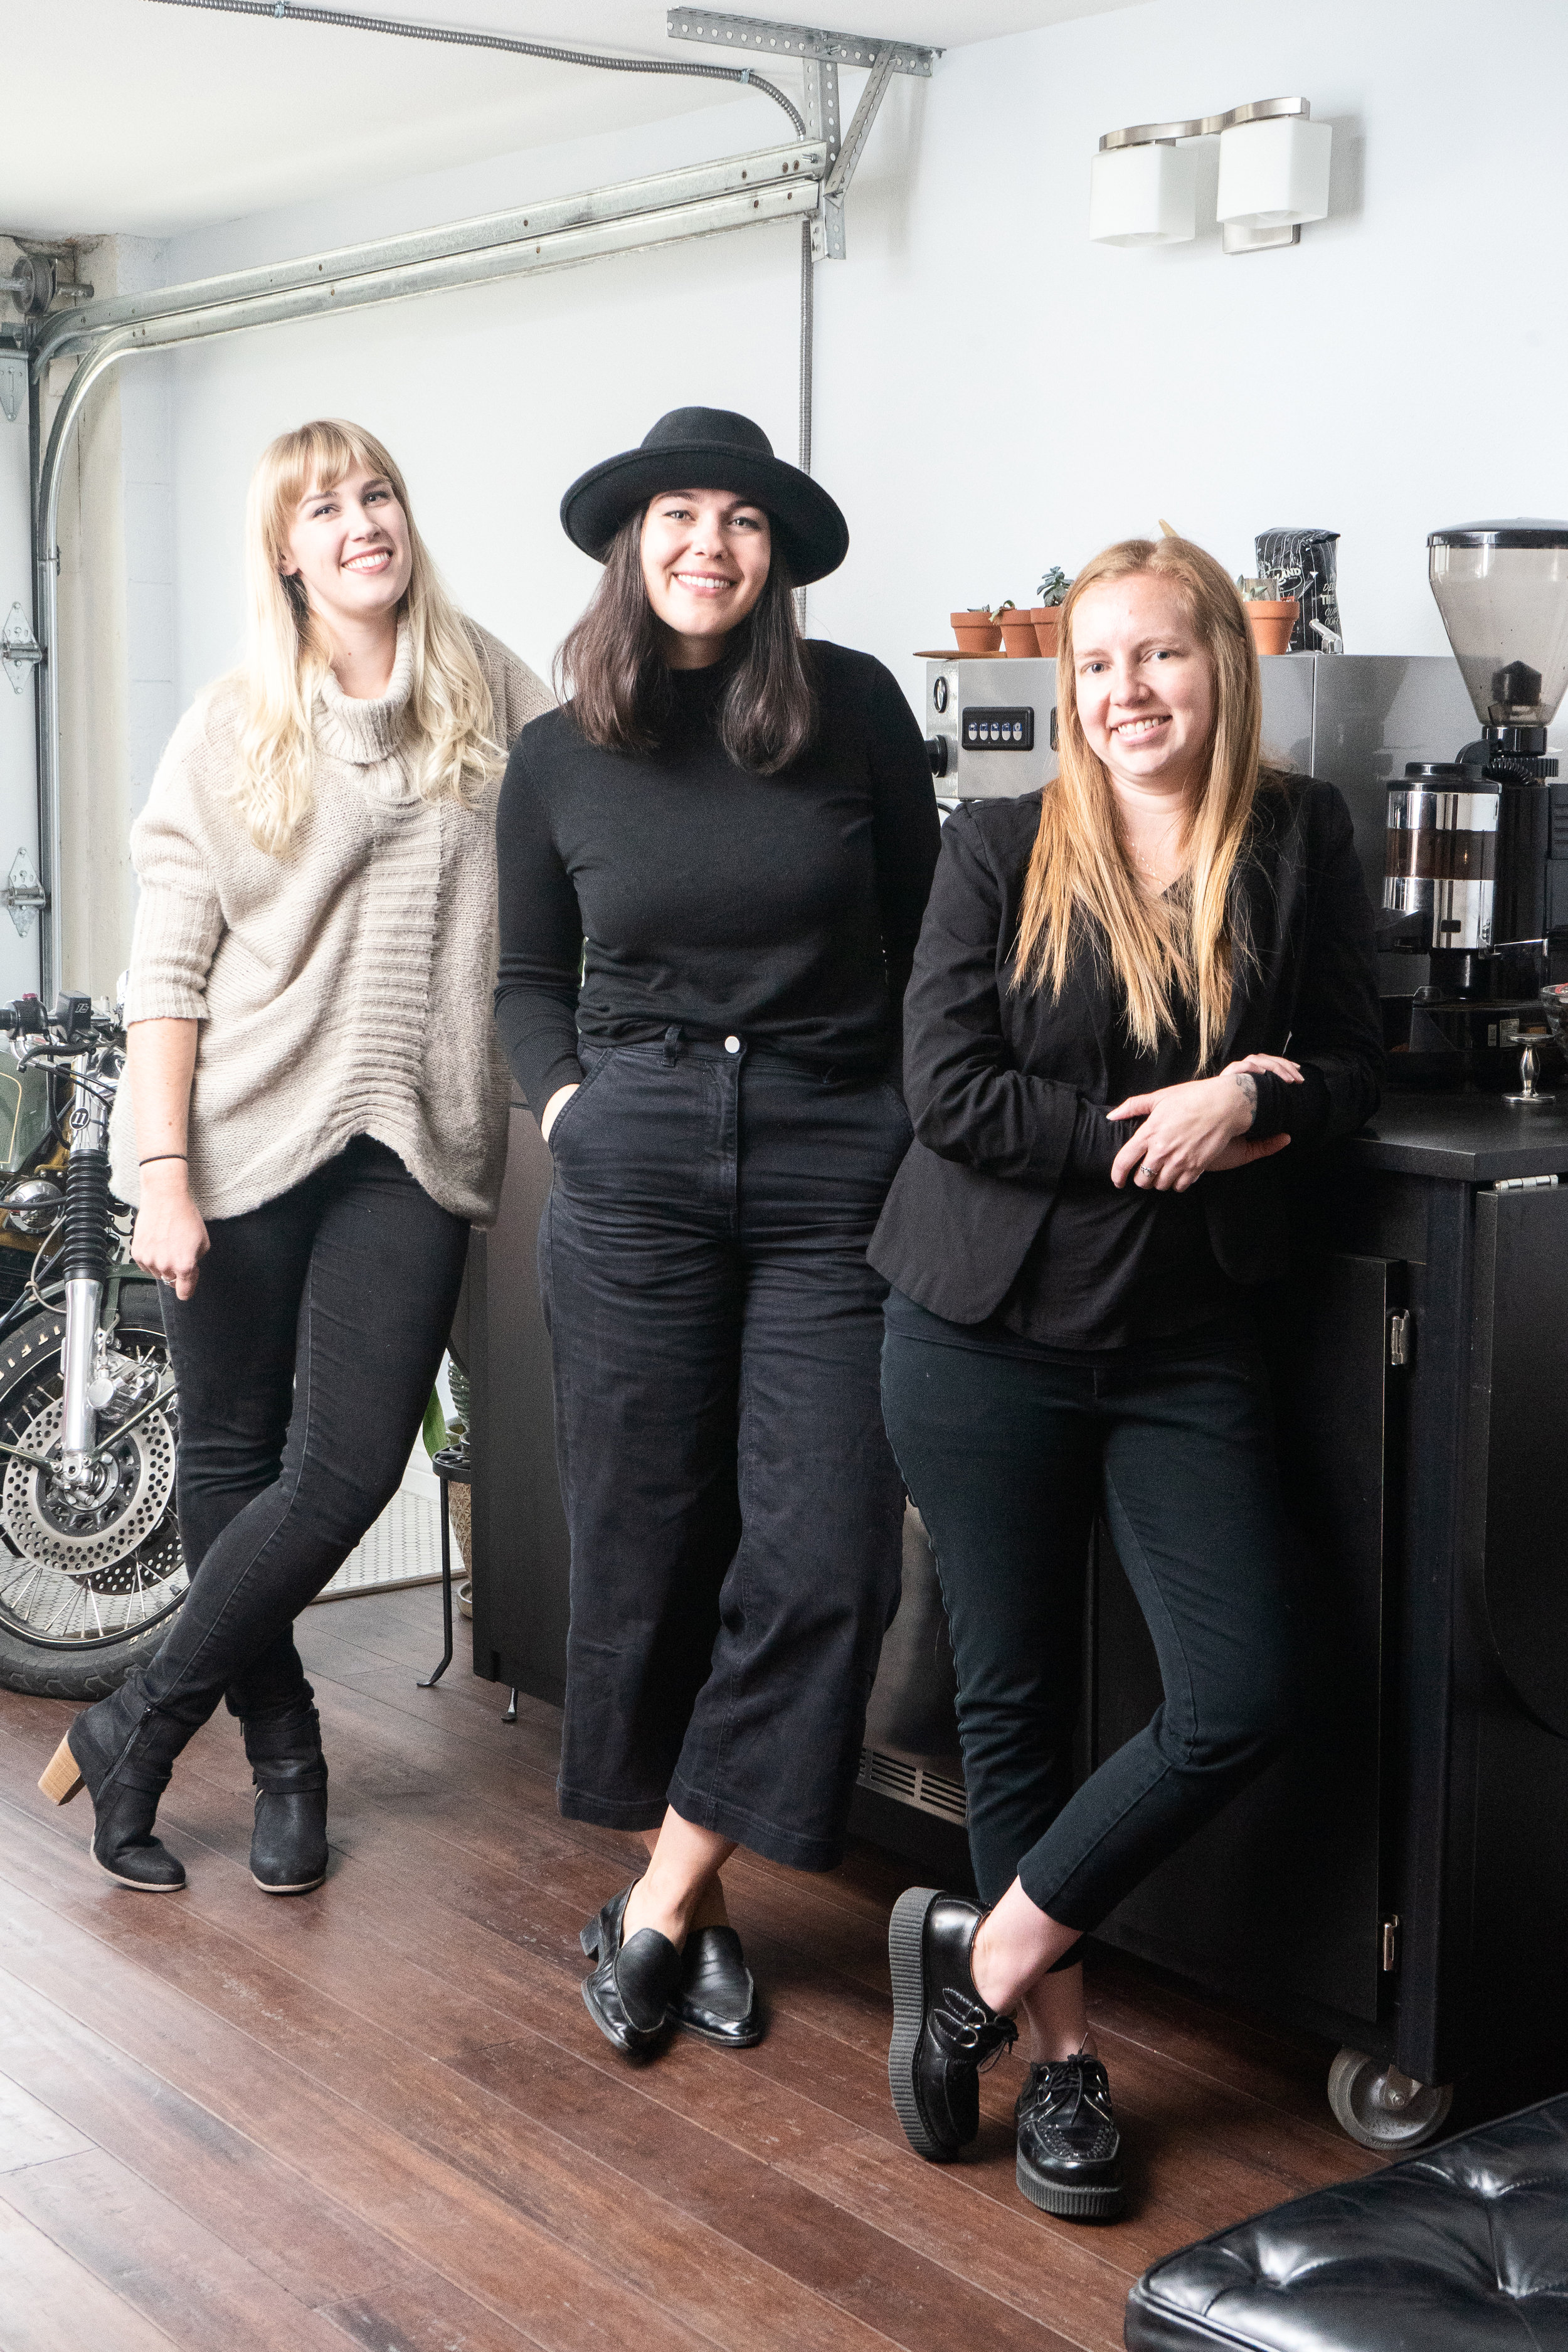 The executive ladies of Oakland Coffee including Kate Kaplan in the middle at Oakland Coffee's HQ in West Oakland.